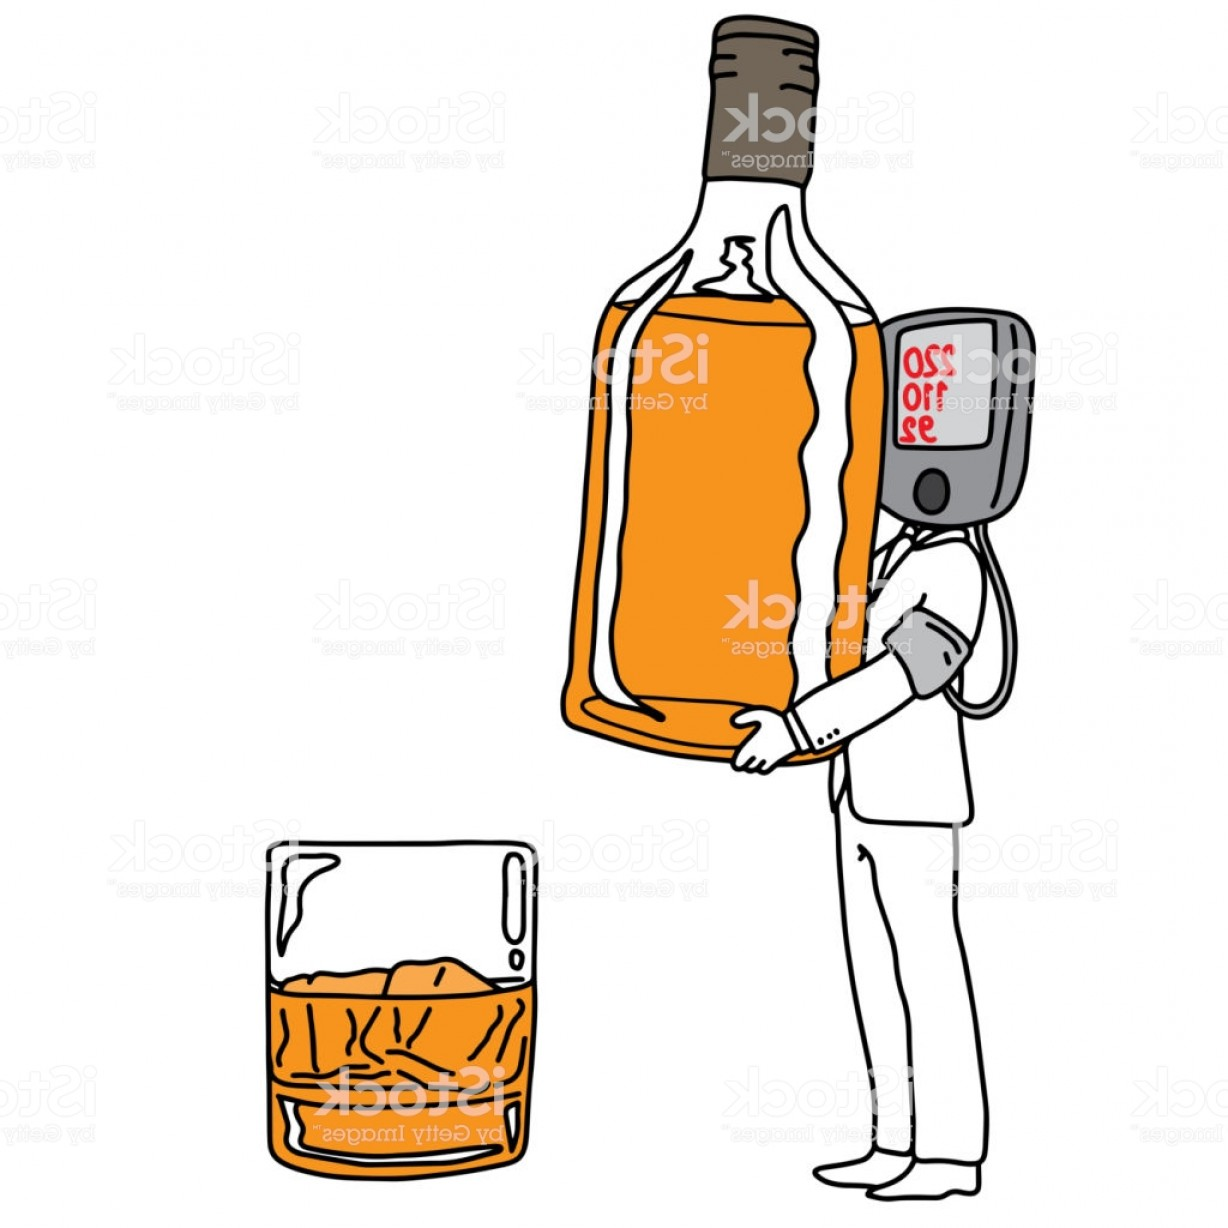 Alcohol Vector: Metaphor Cause Of High Blood Pressure Or Hypertension Is Drinking Alcohol Vector Gm